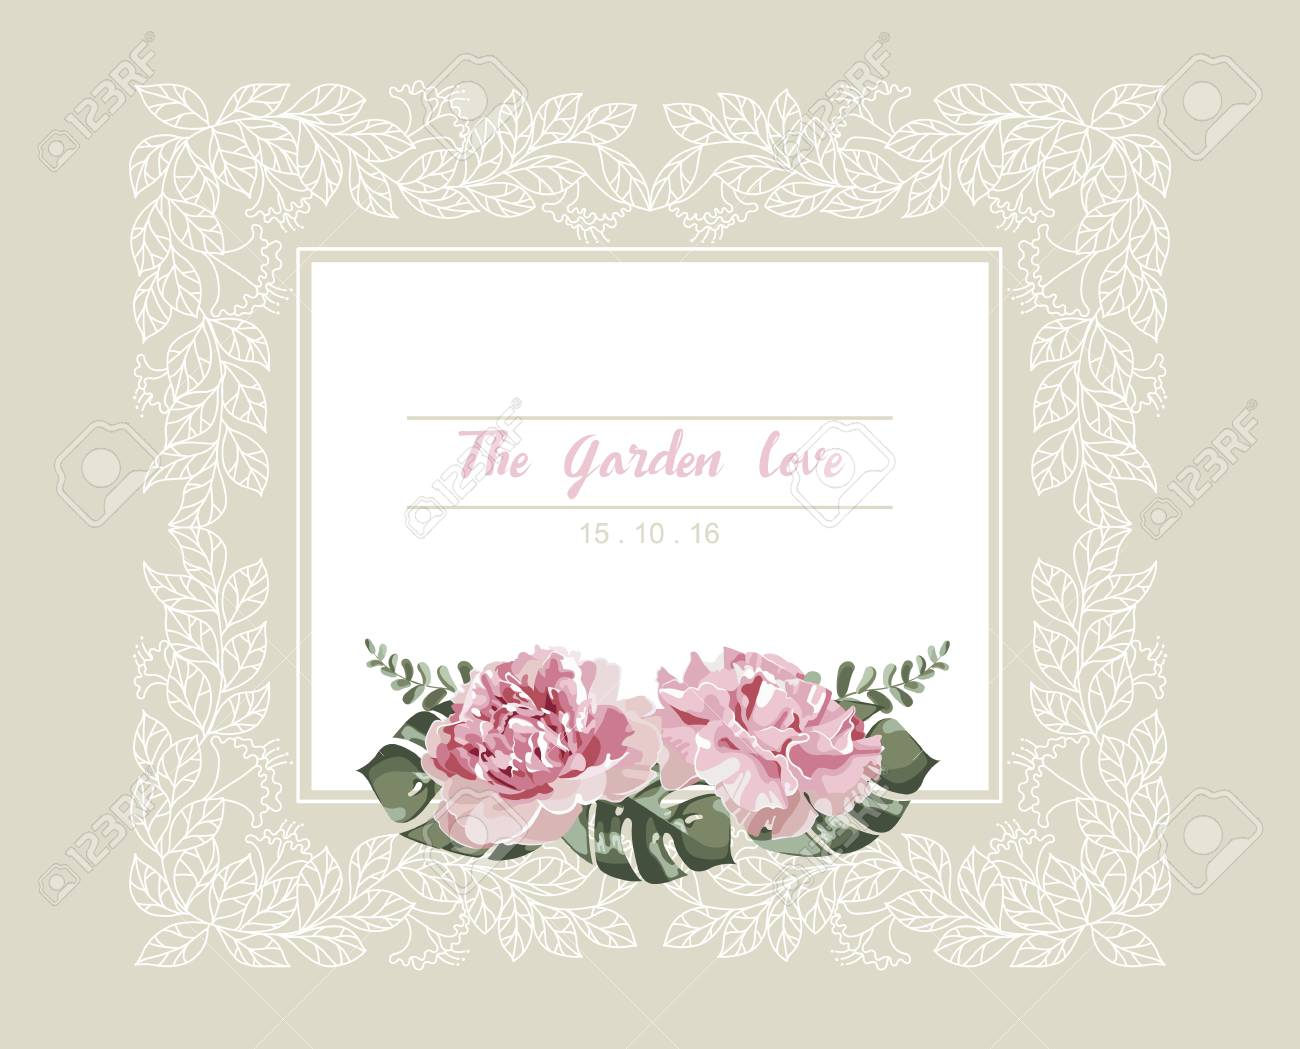 Romantic Wedding Invitation. Vintage Card With Pink Flowers And ...